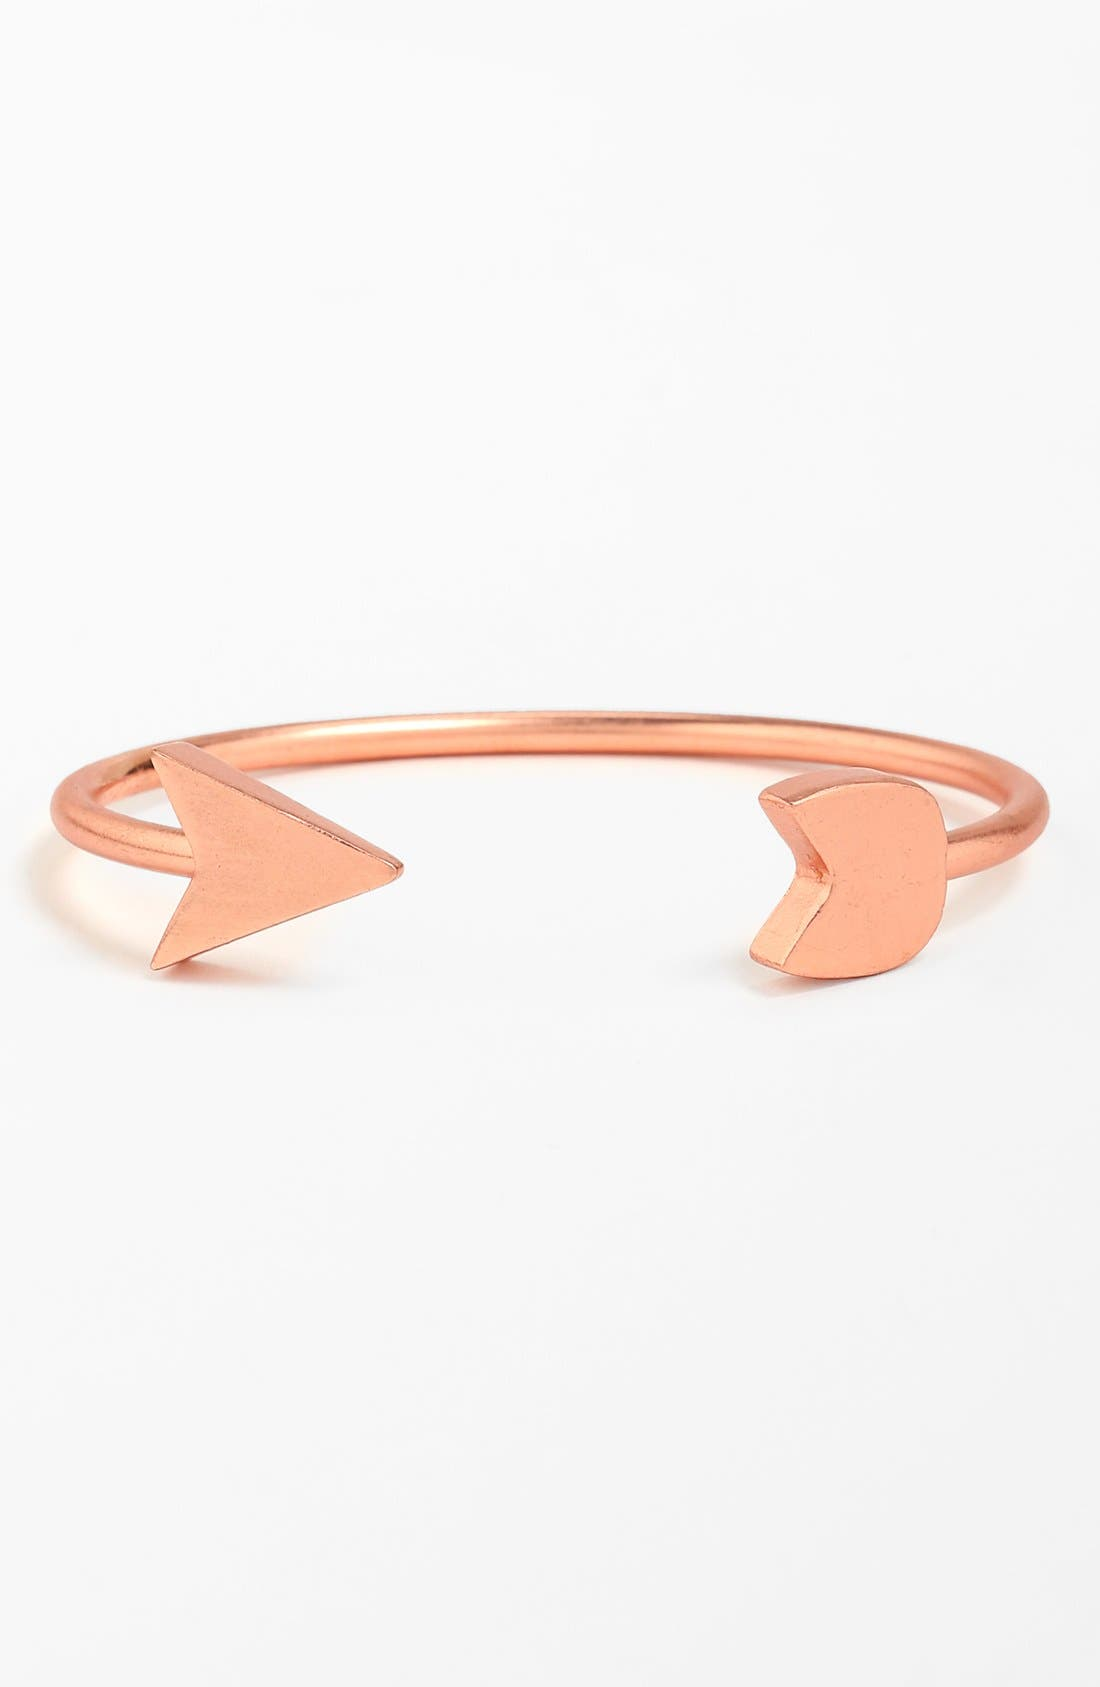 Main Image - Nico New York Arrow Cuff